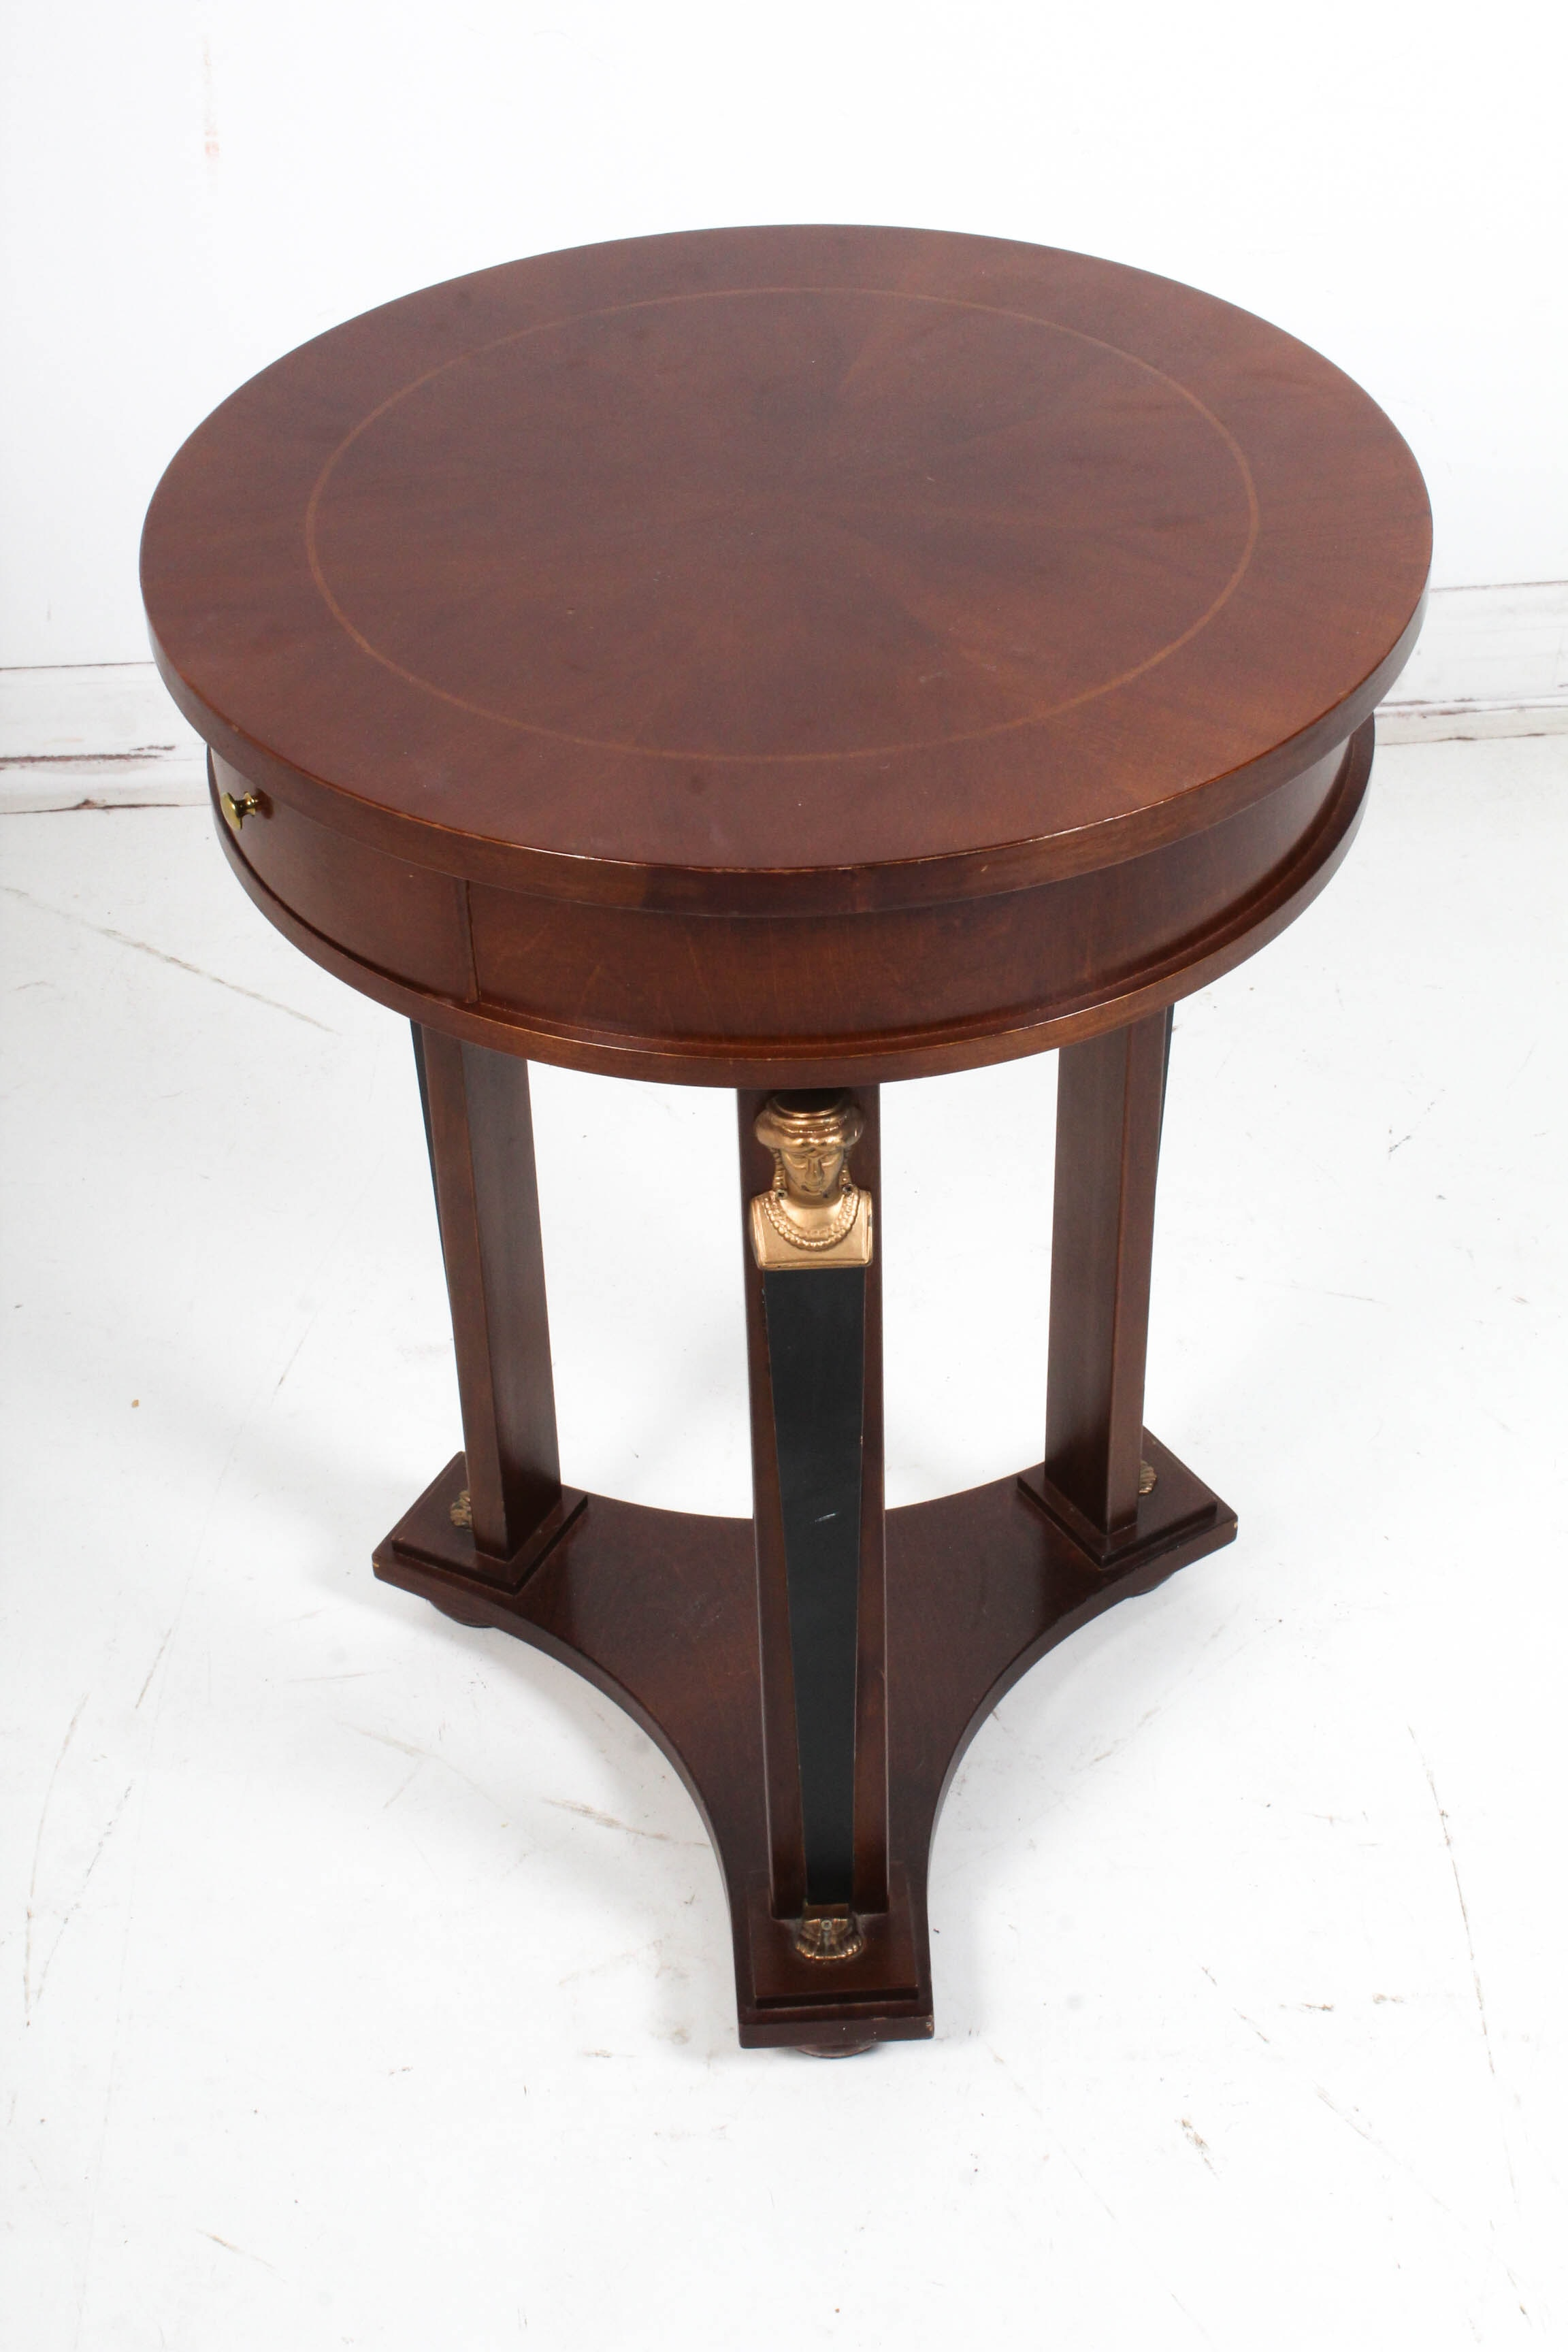 French Empire Style Side Table by Emerson et Cie